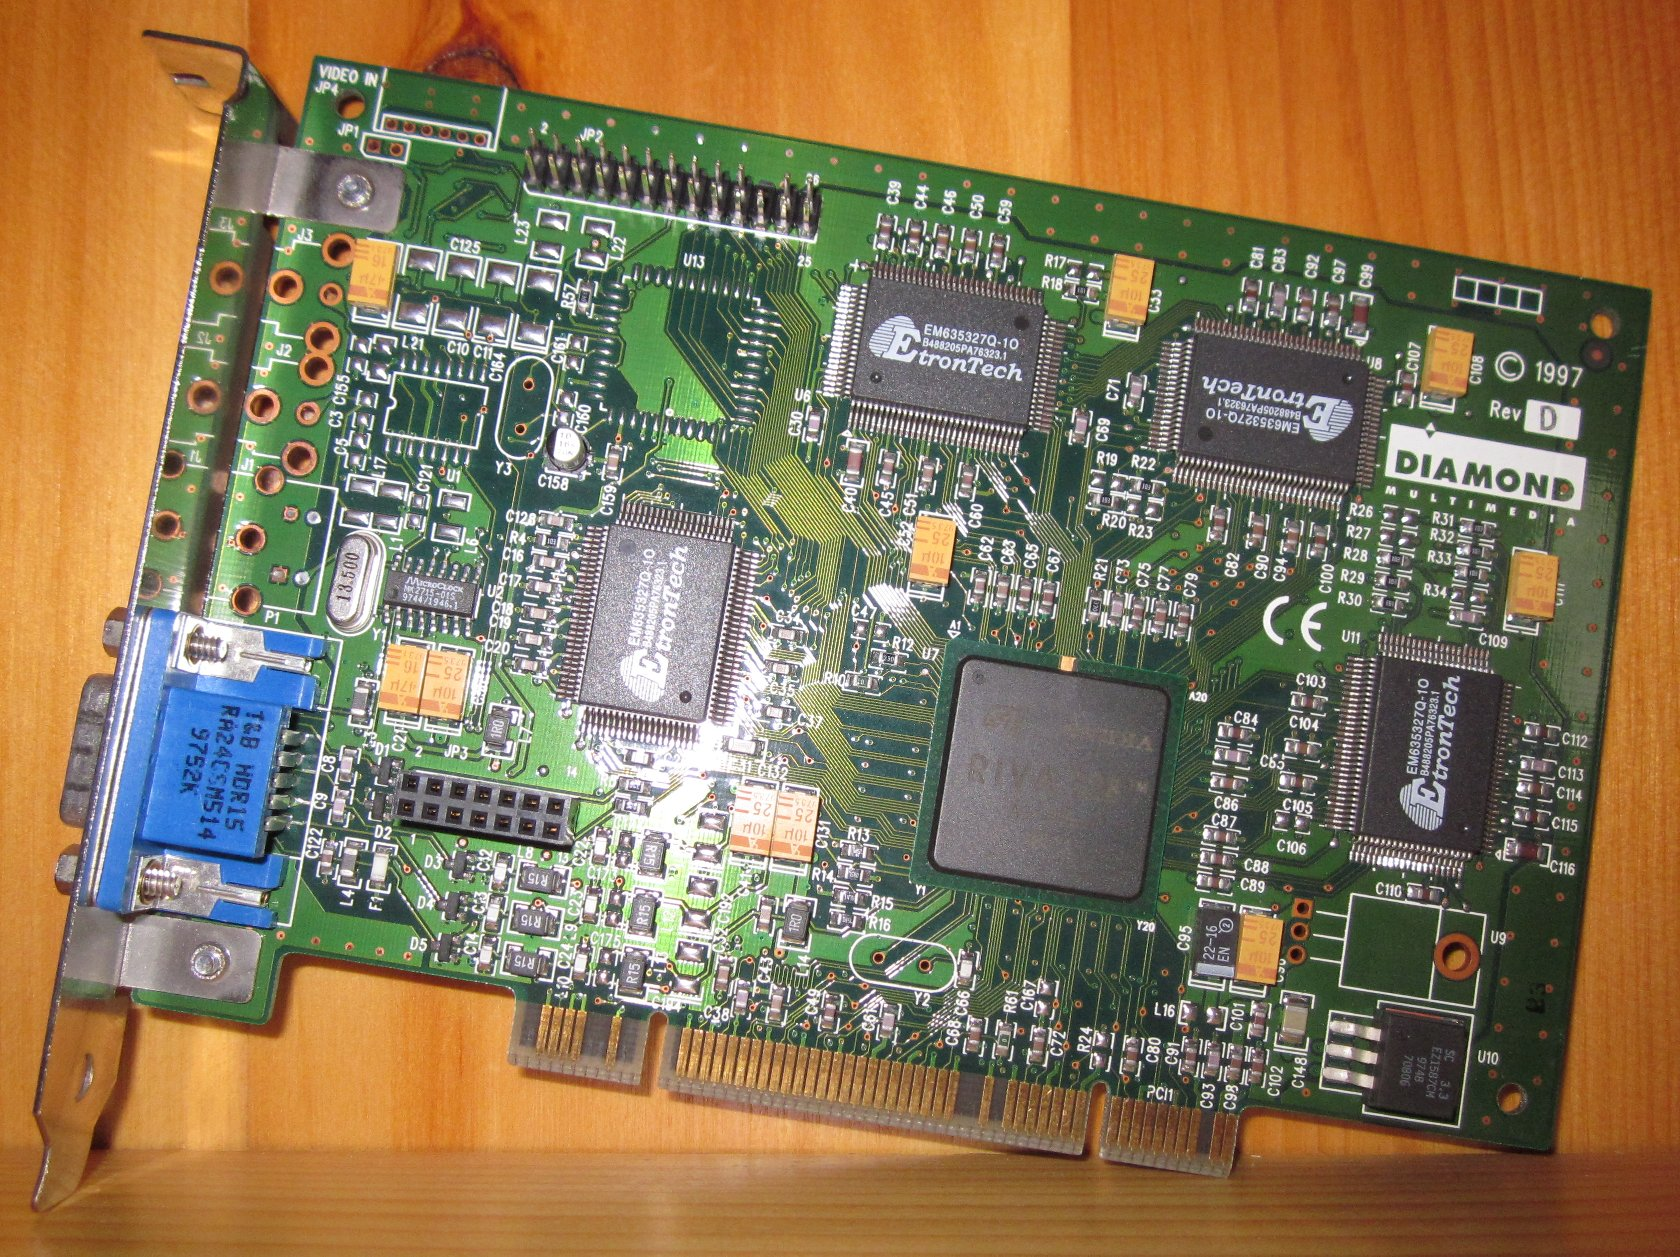 Diamond Riva128 PCI.jpg